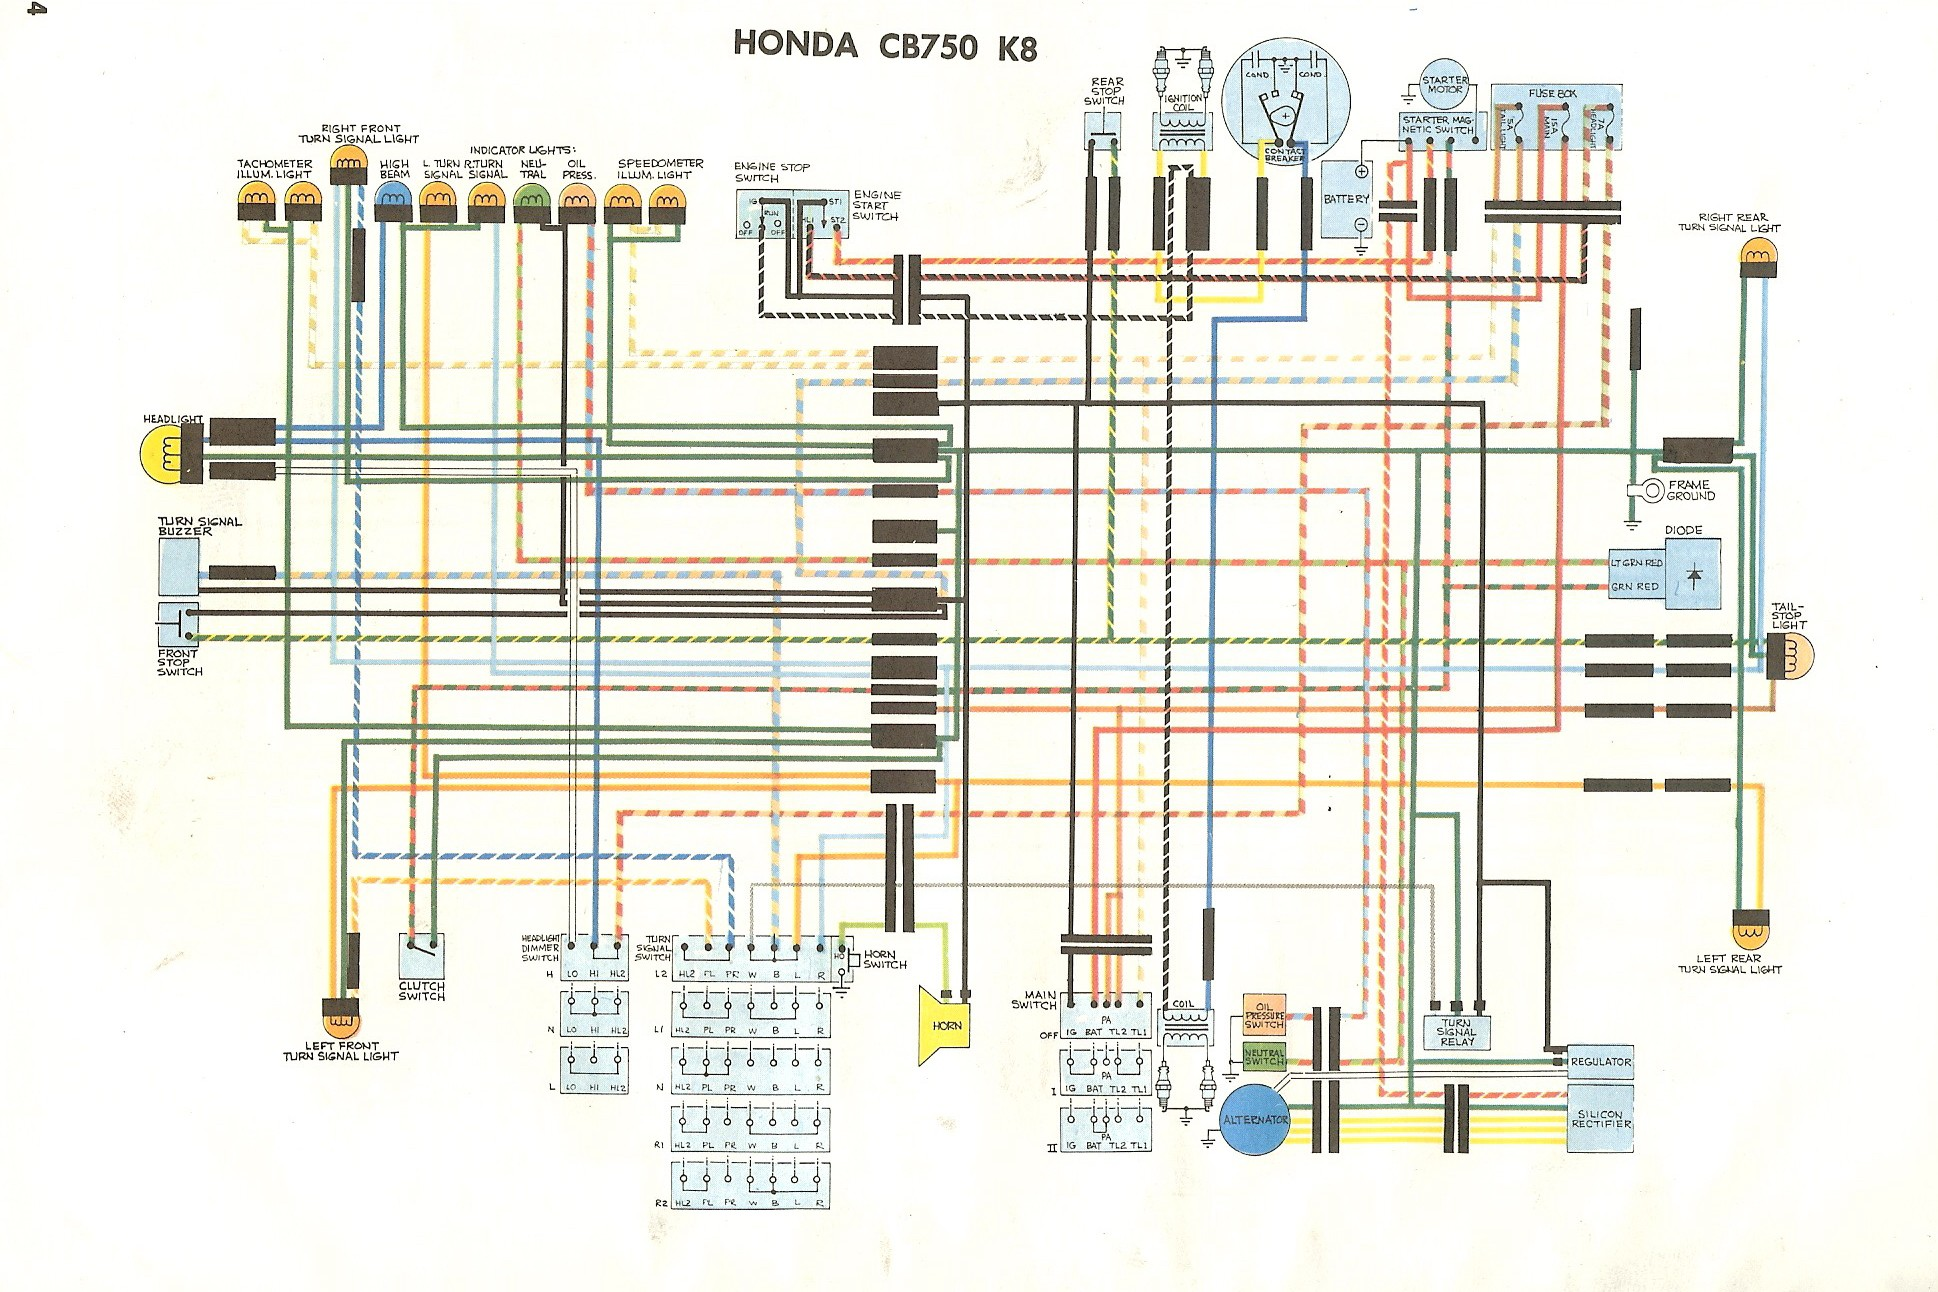 hight resolution of 1980 honda cb650 wiring diagram cb750k simple honda cb750 wiring diagram blurts of 1980 honda cb650